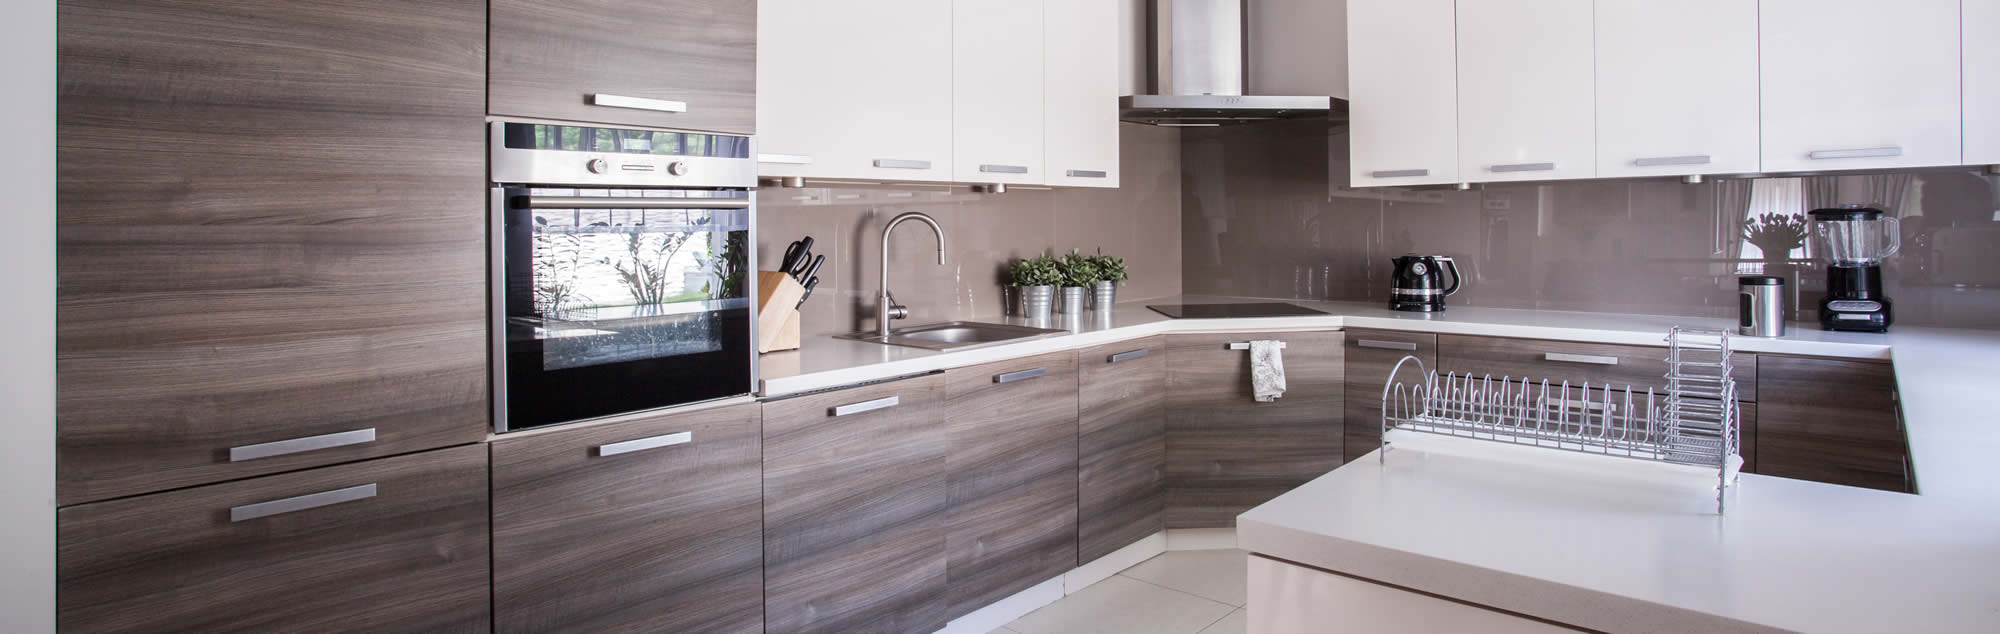 Prominade Construction Kitchens Brisbane